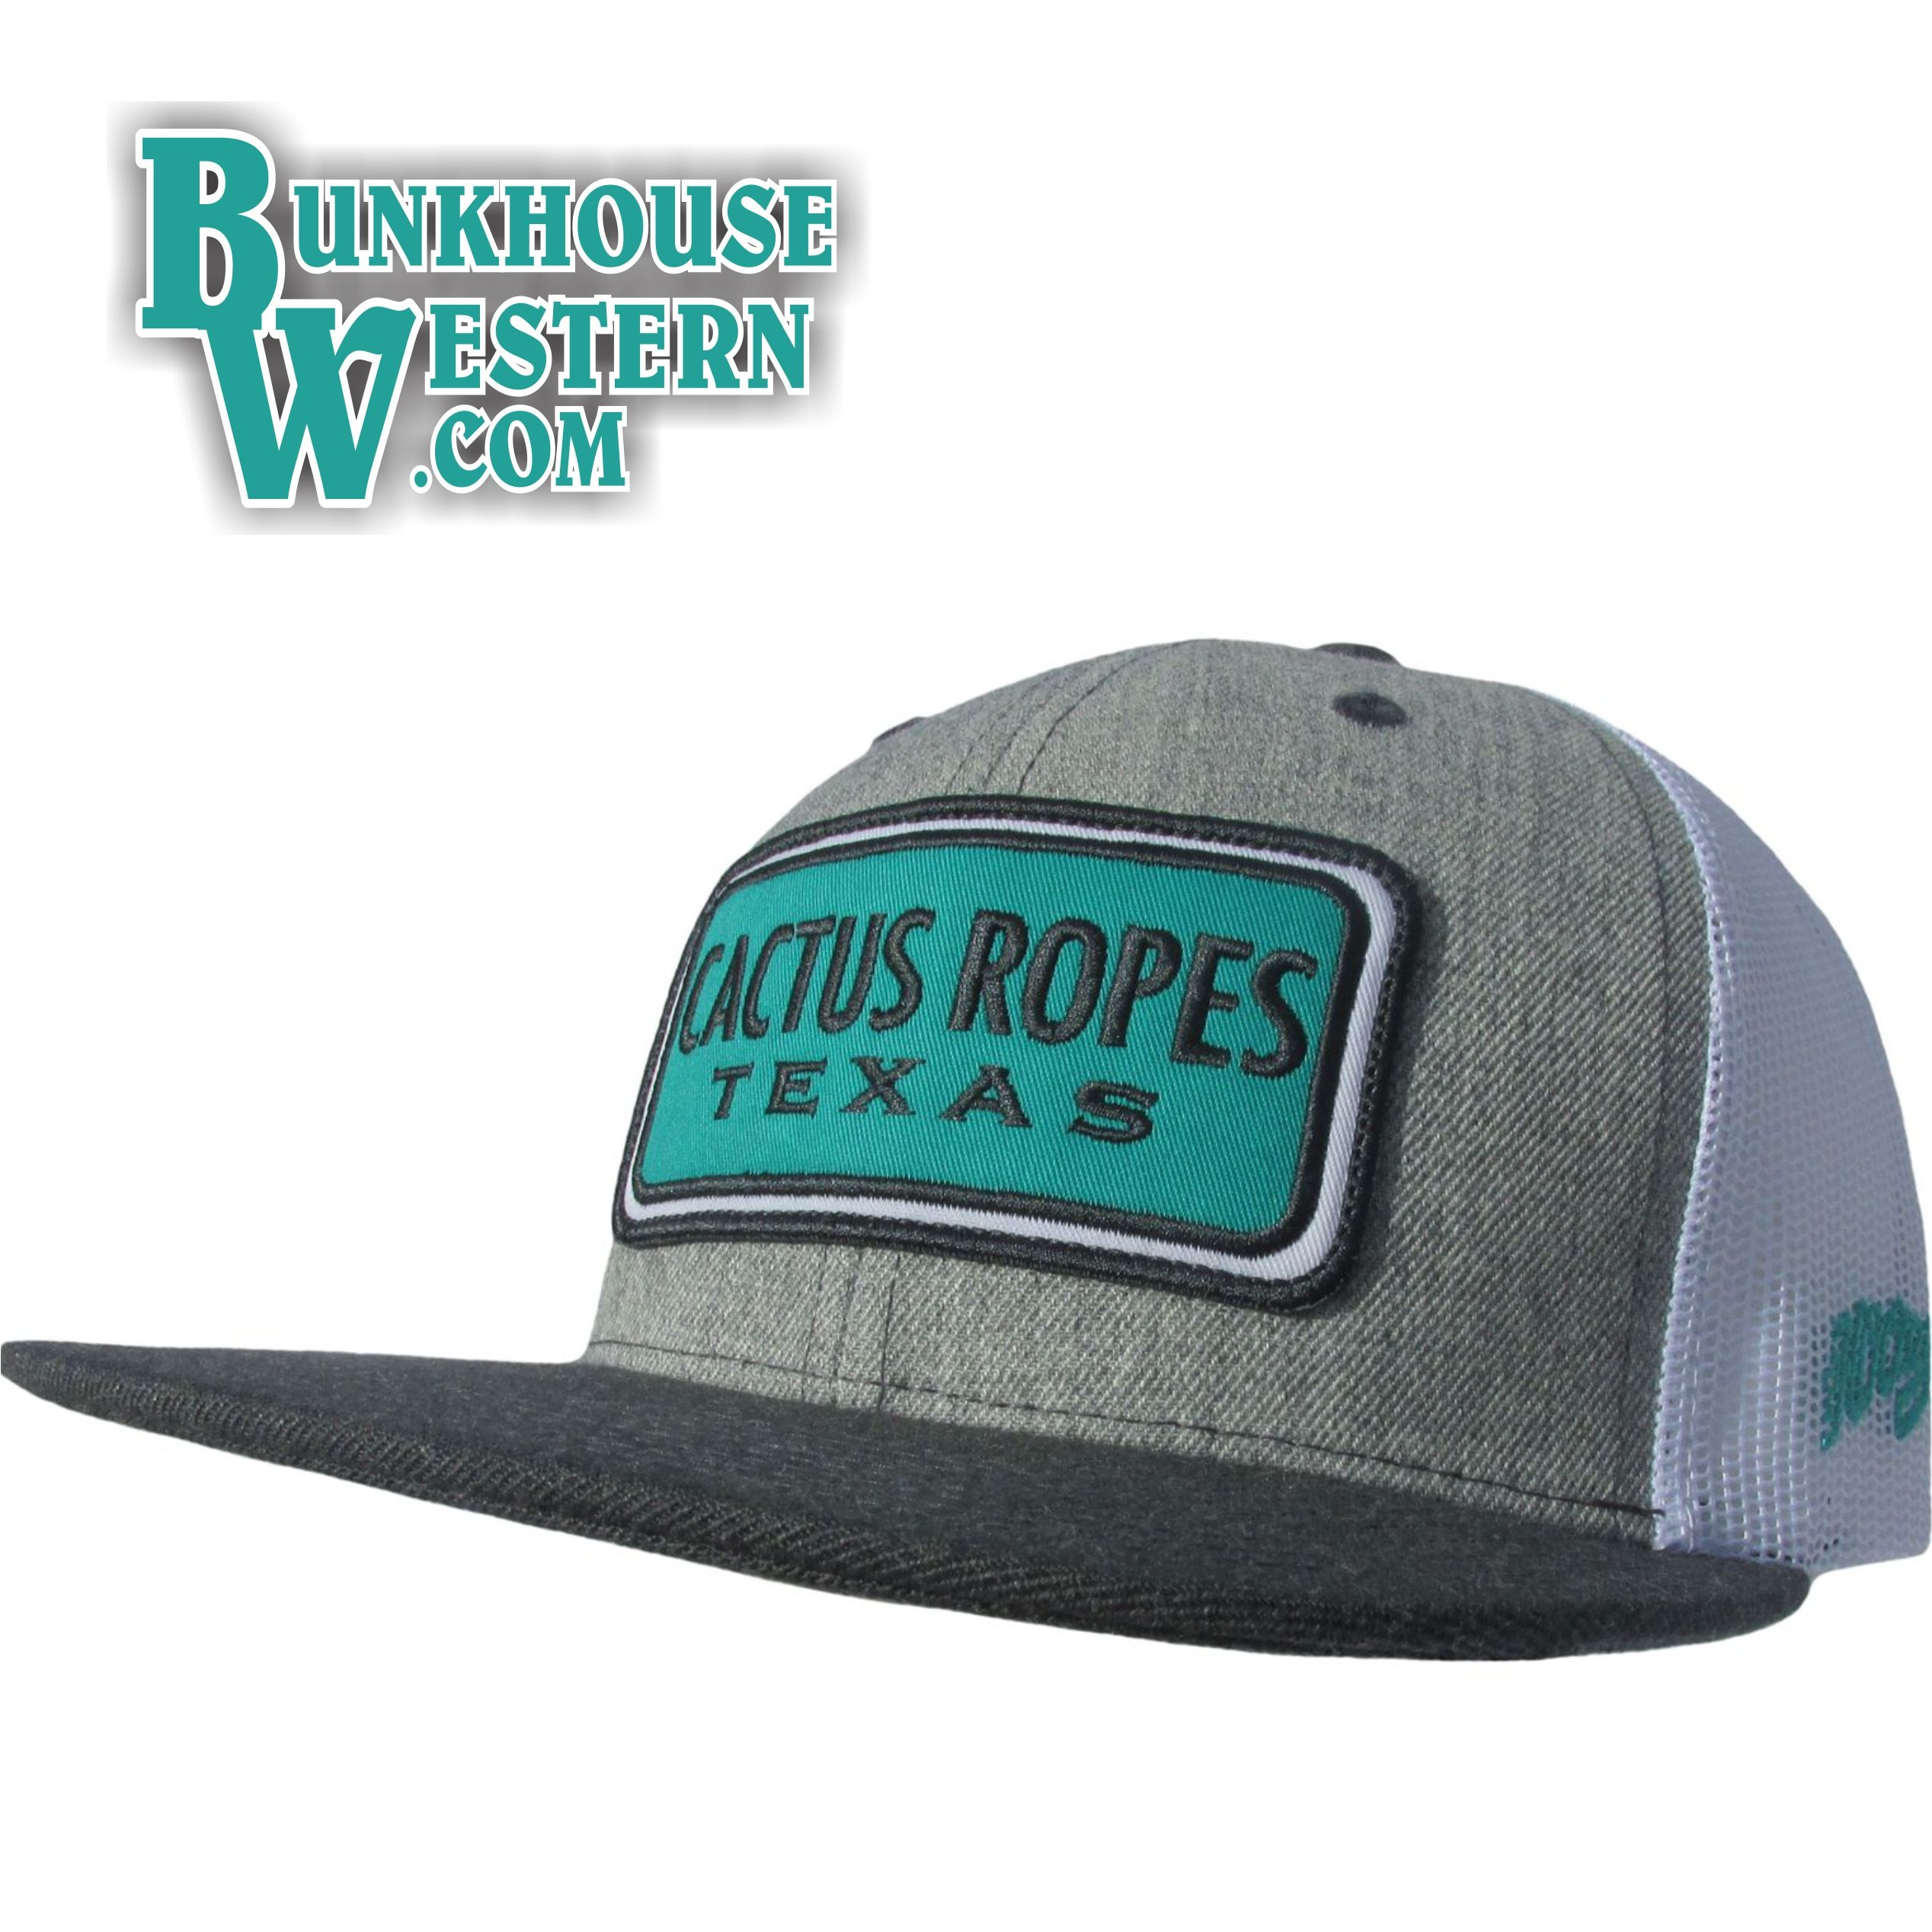 a8265588 Hooey, Cactus Ropes, Texas, Teal Patch, Trucker Cap, Cowboy Hat, Hybrid  (Shapeable) Bill, $30.98